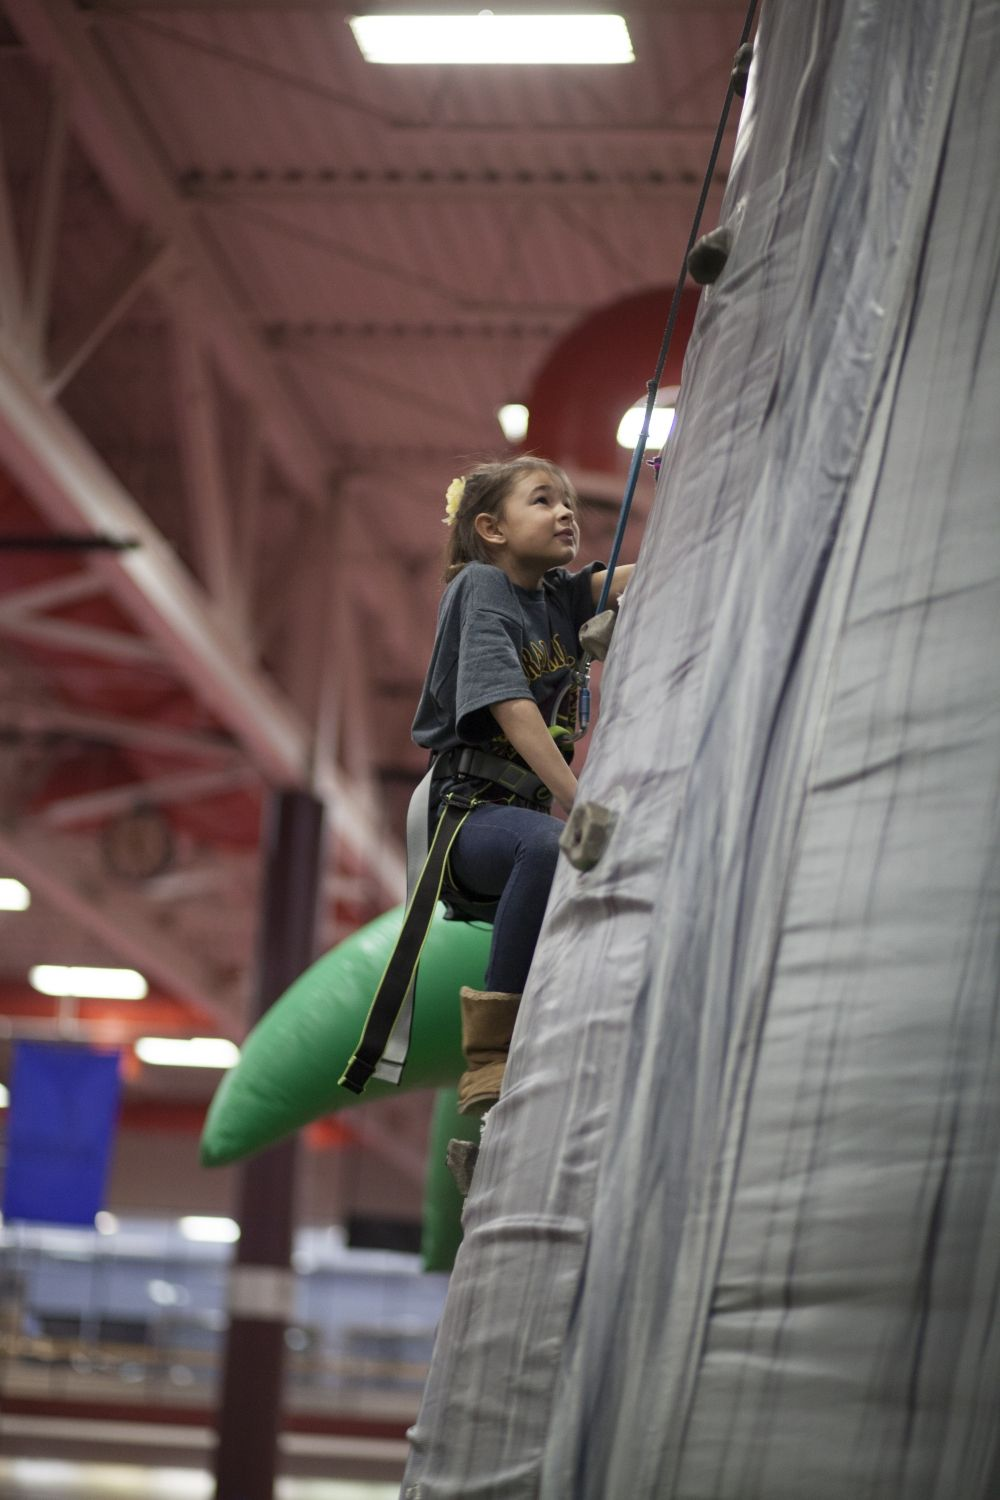 Carnival features new games, inflatable rock wall; Central Michigan Life ; By Kate Carlson